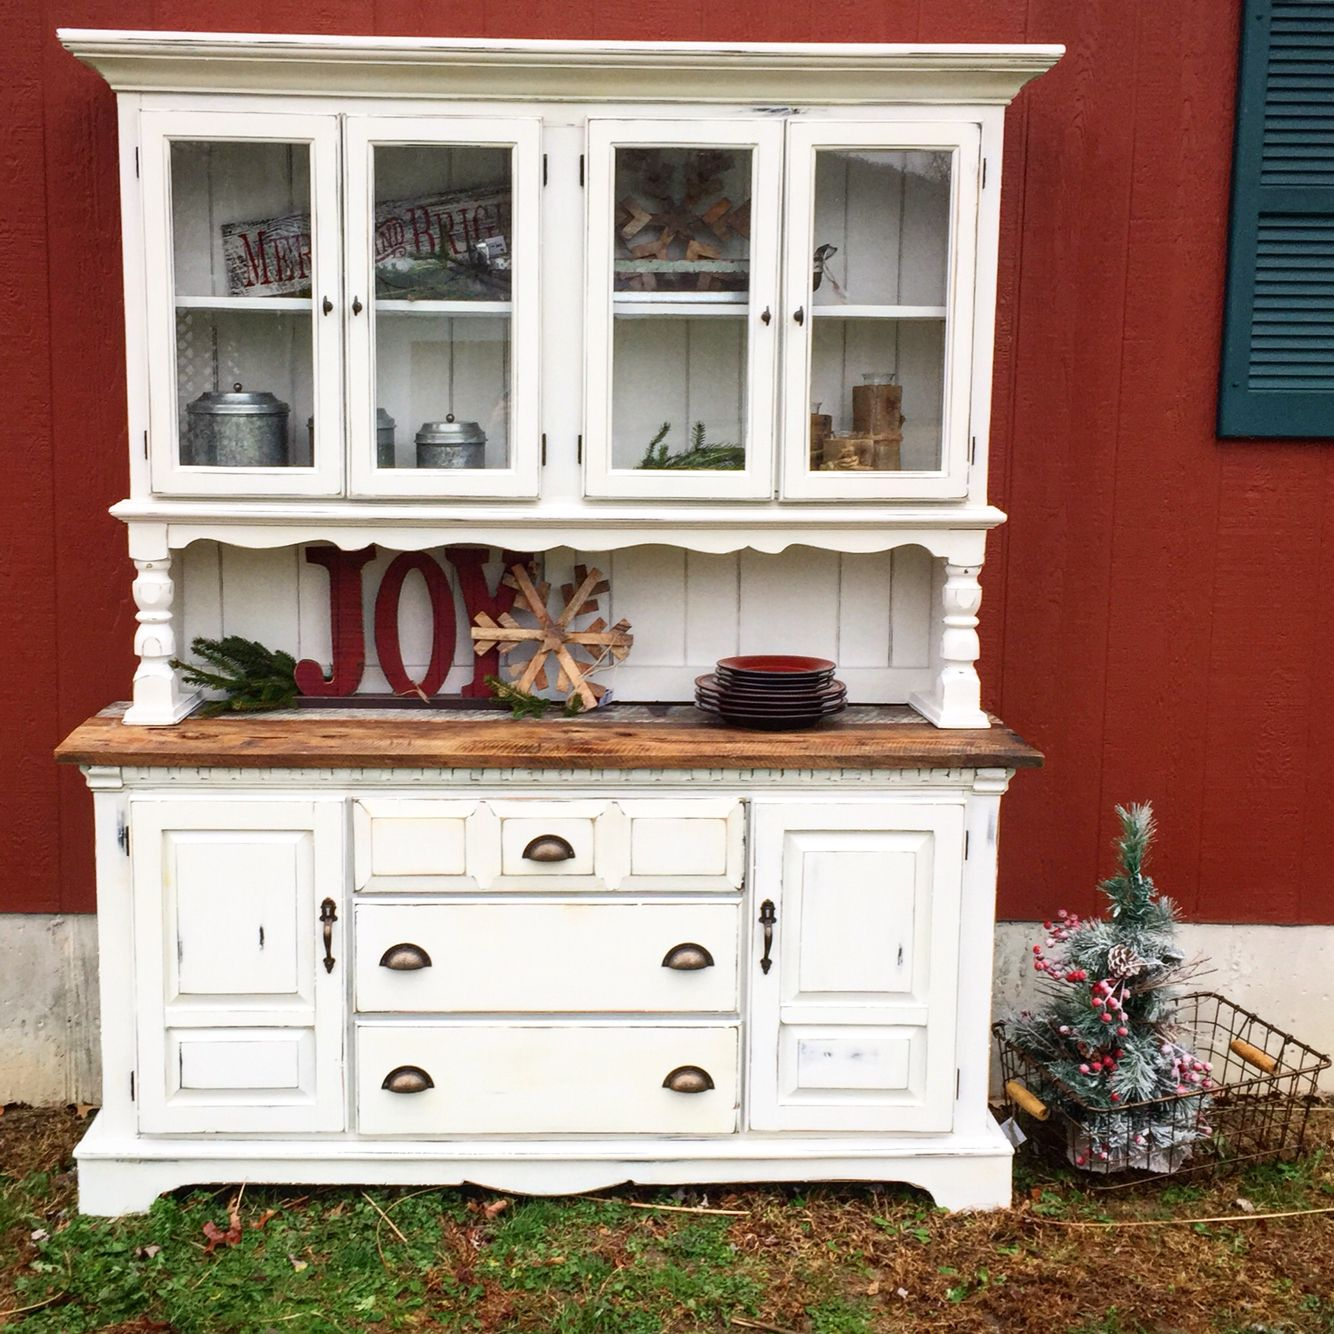 Rustic white farm style china cabinet with barnwood yes barnwood top junk love boutique